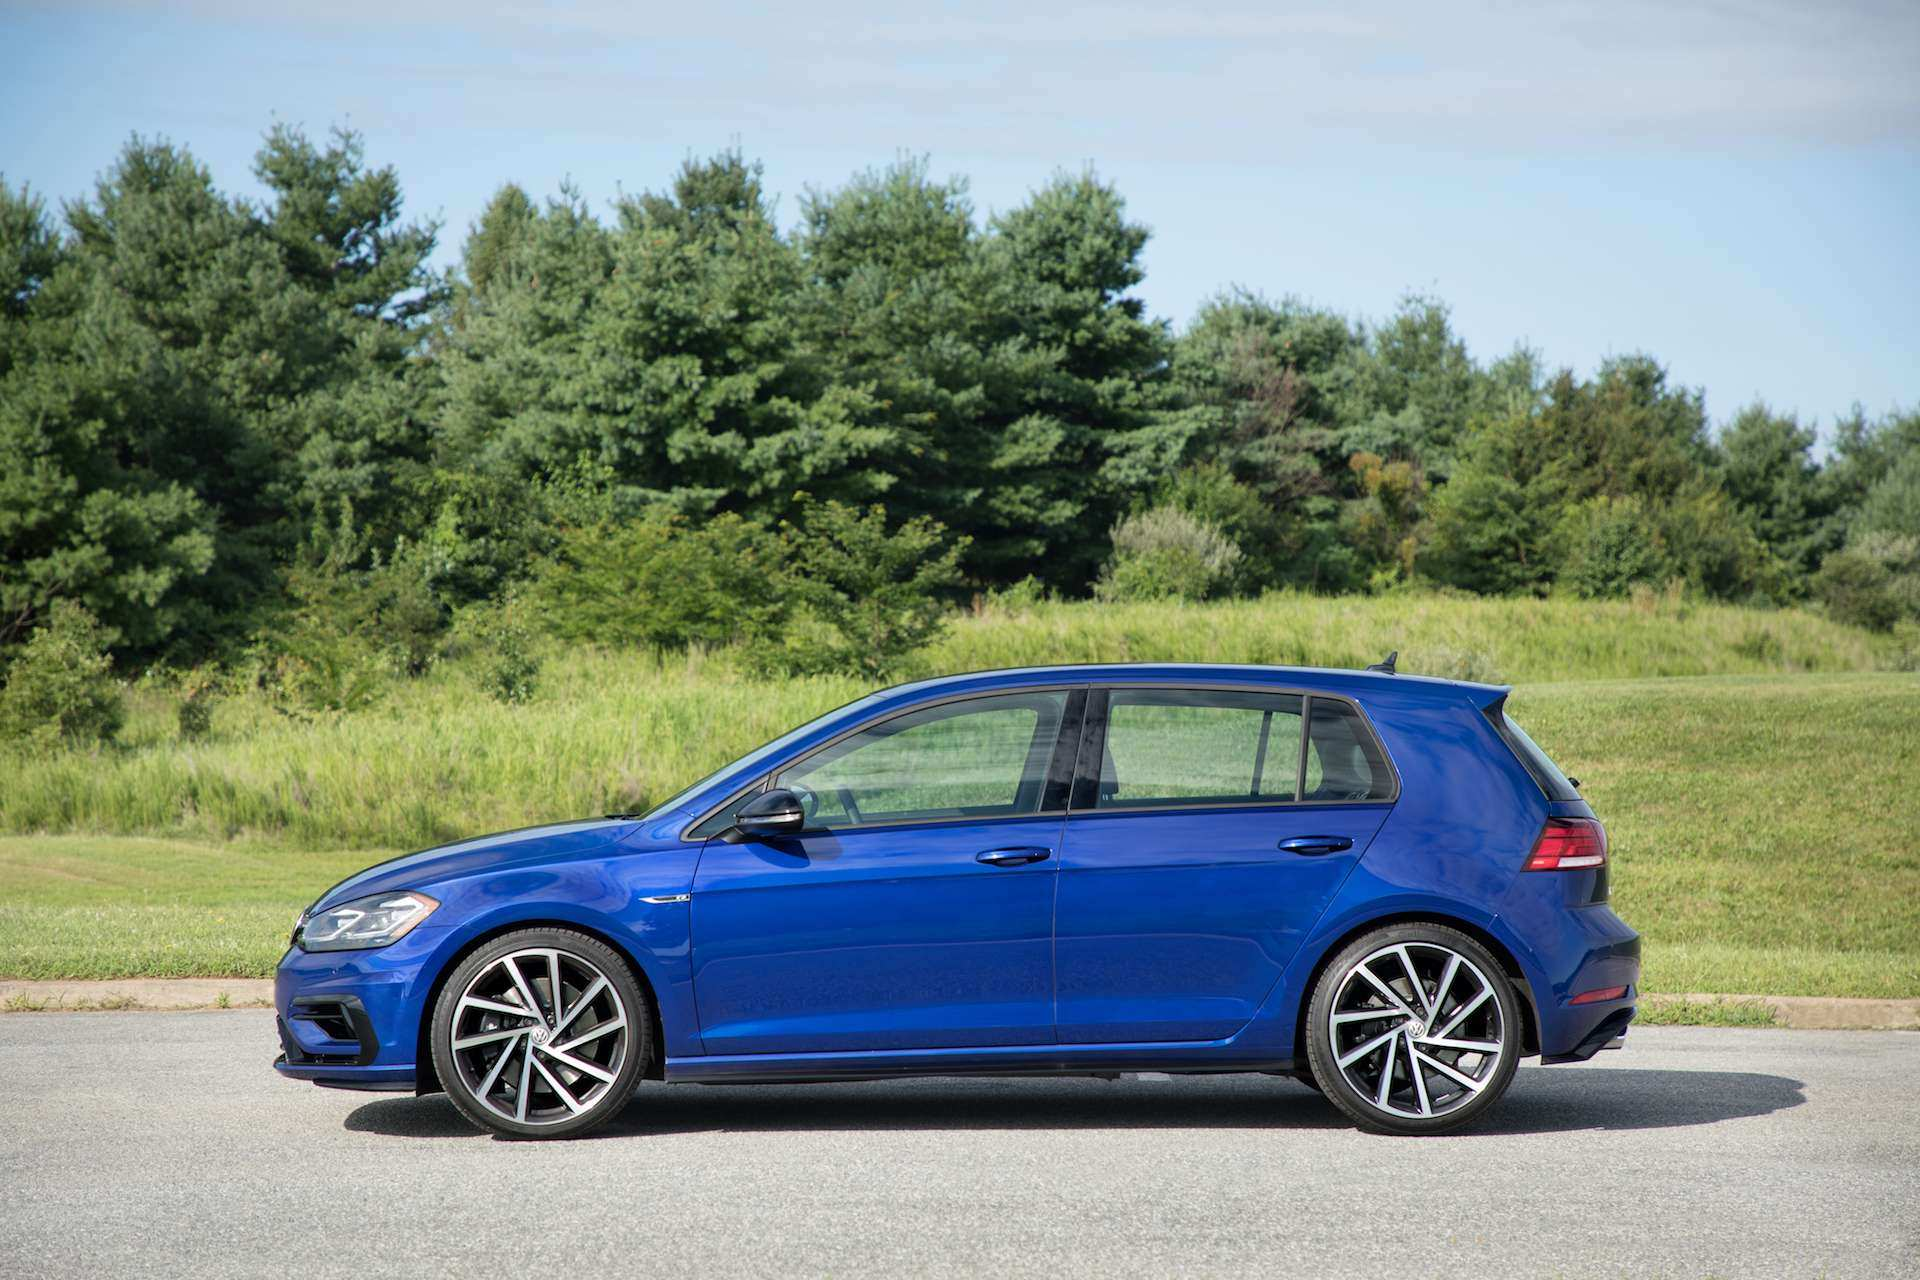 70 Gallery of 2019 Volkswagen R Configurations with 2019 Volkswagen R